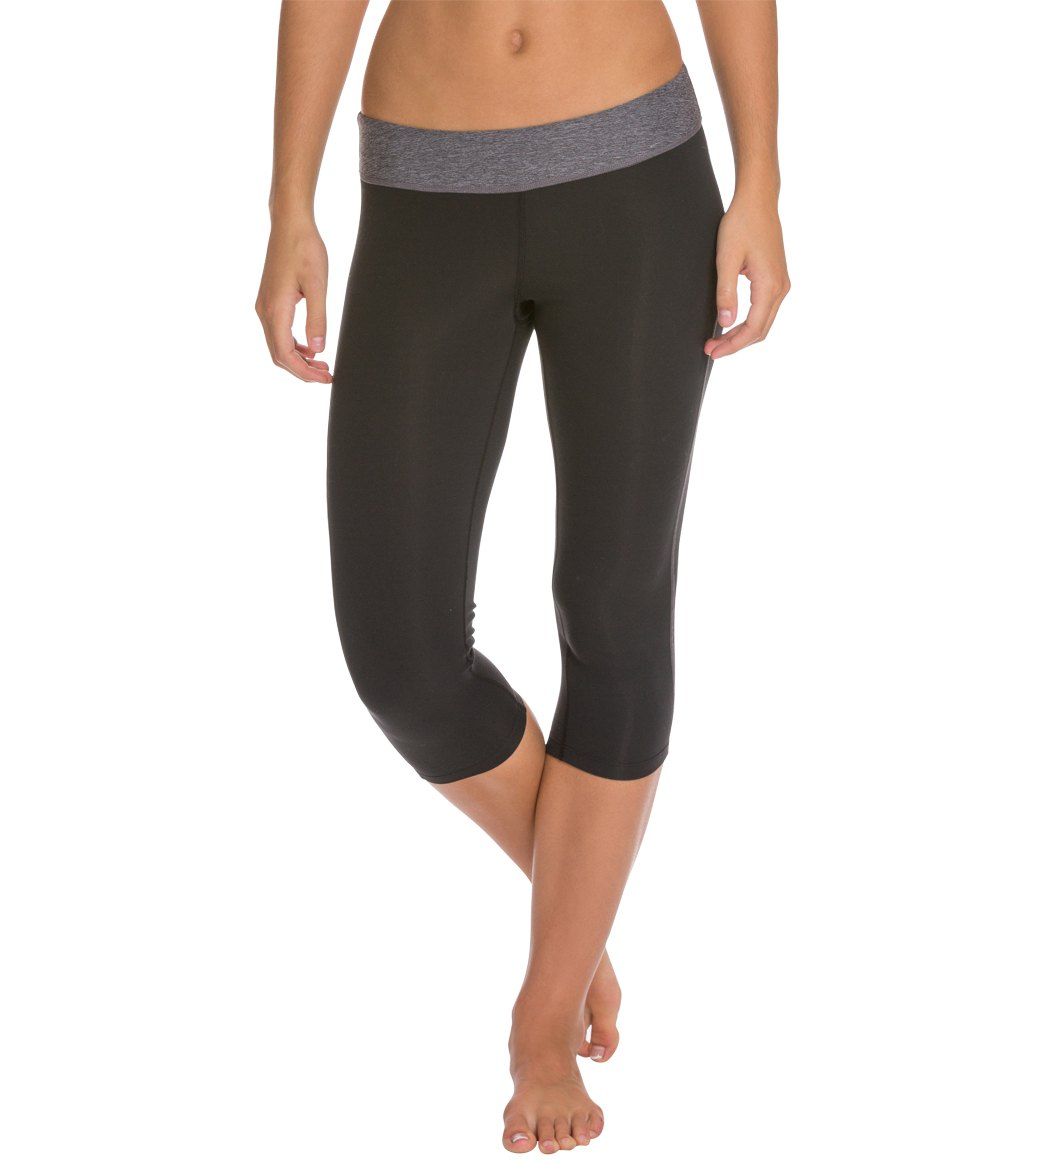 Speedo Women's Swim Capri Pant at SwimOutlet.com